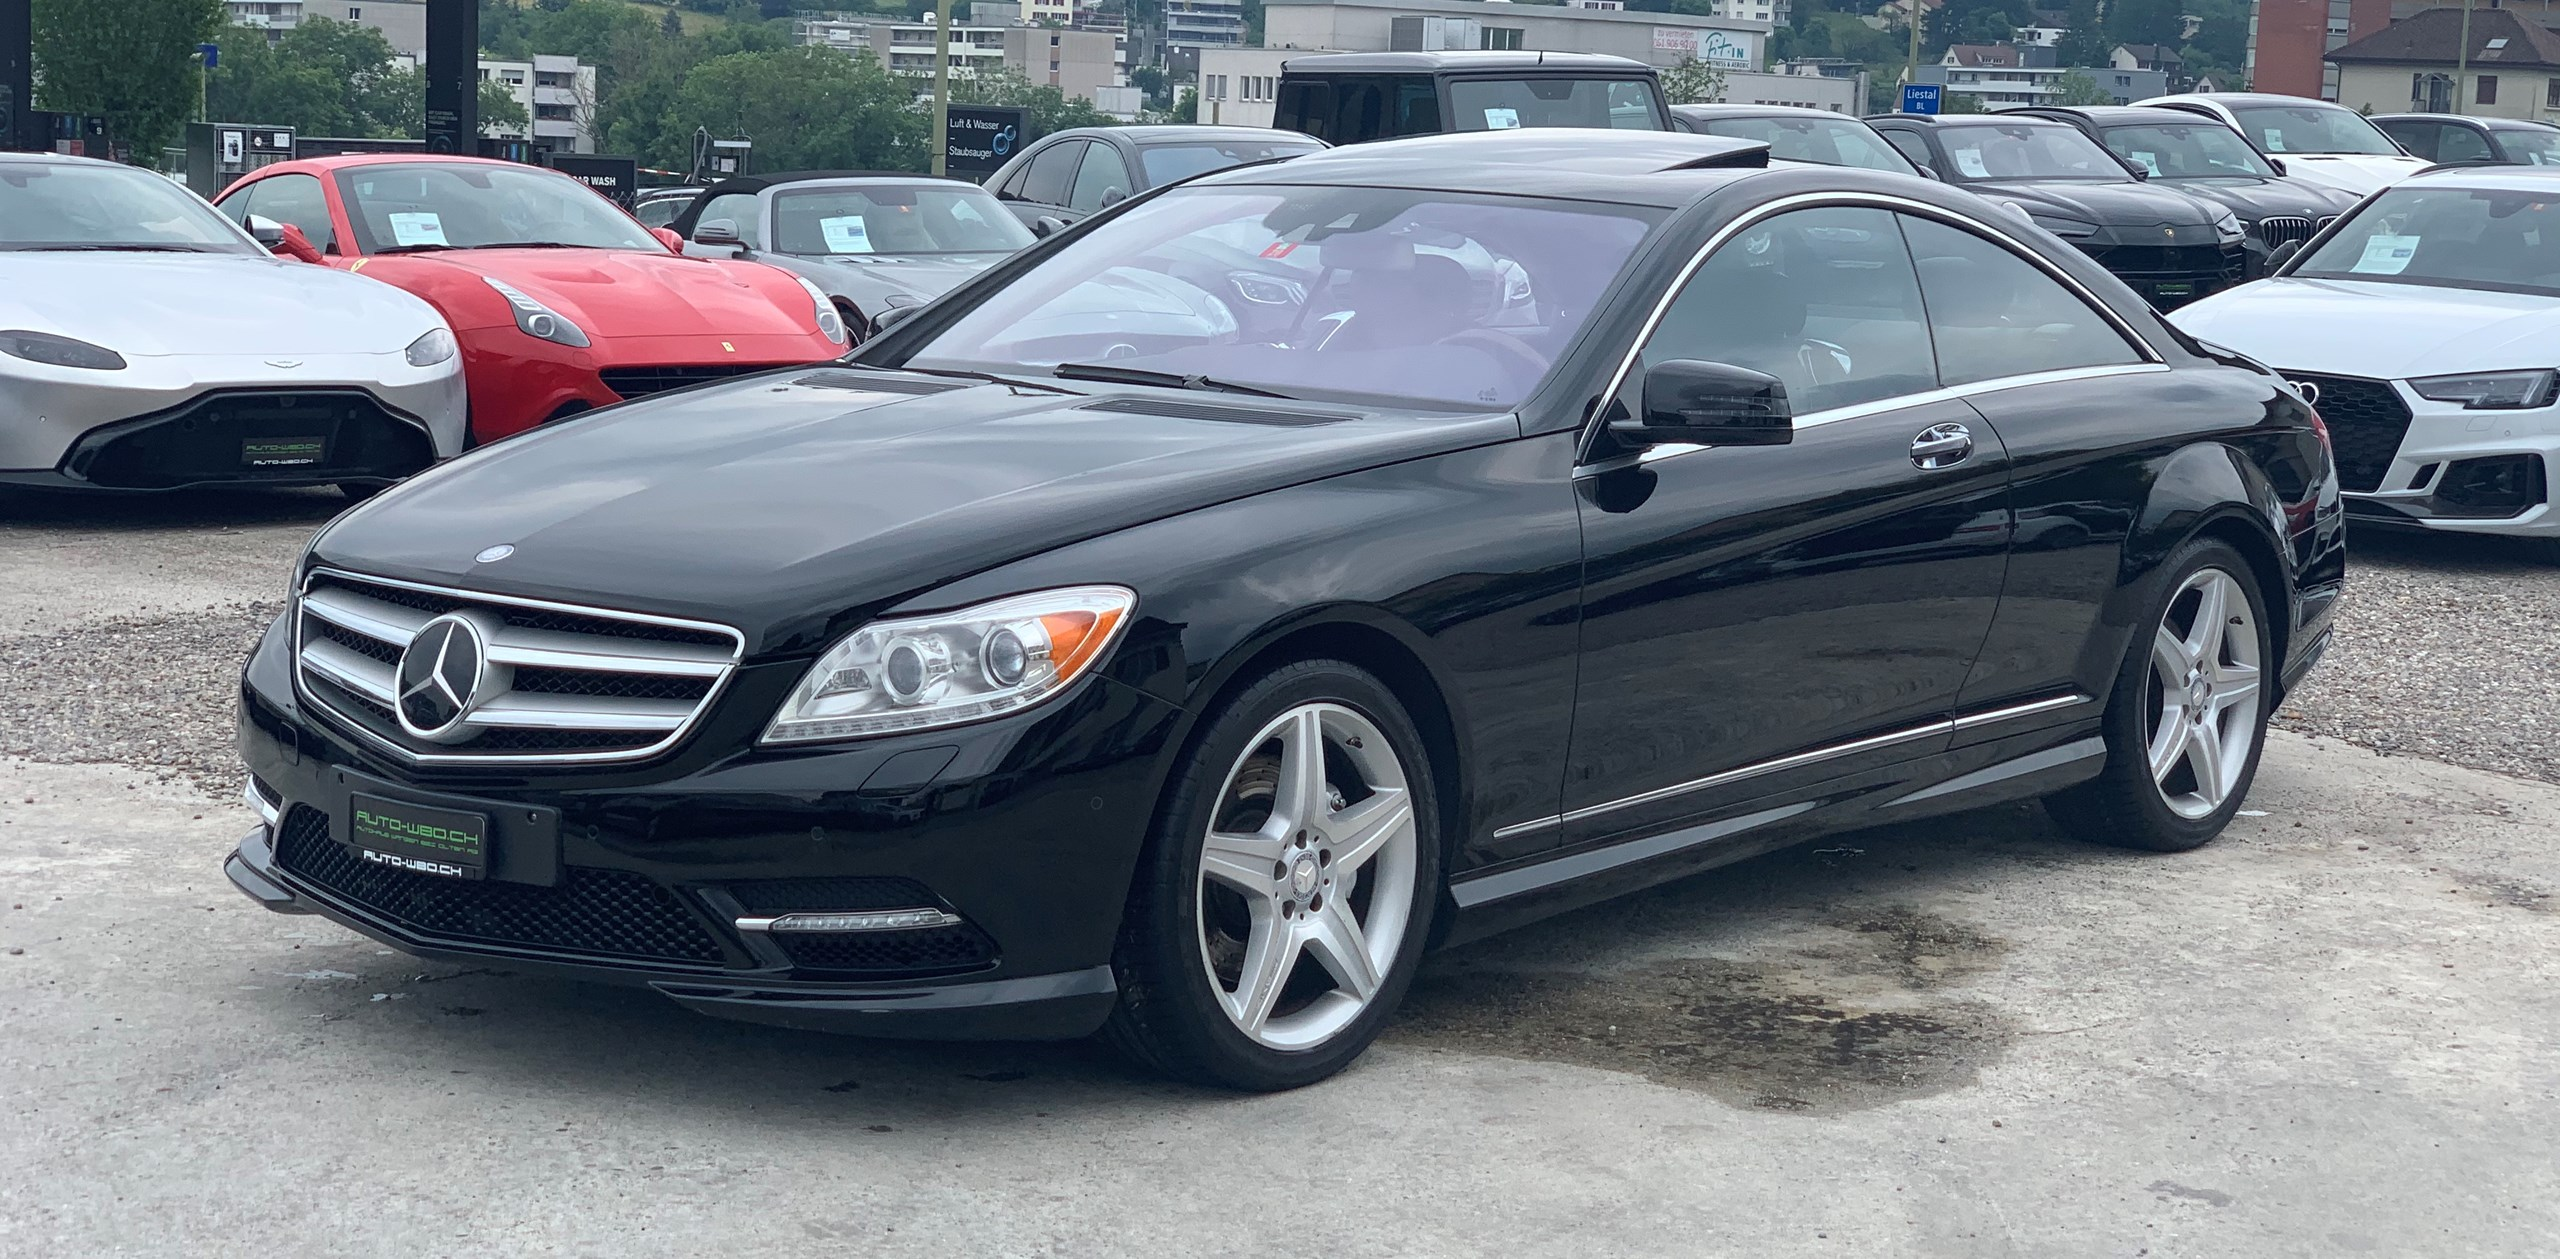 coupe Mercedes-Benz CL 500 4Matic 7G-Tronic I AMG SPORT LIME PAKET I